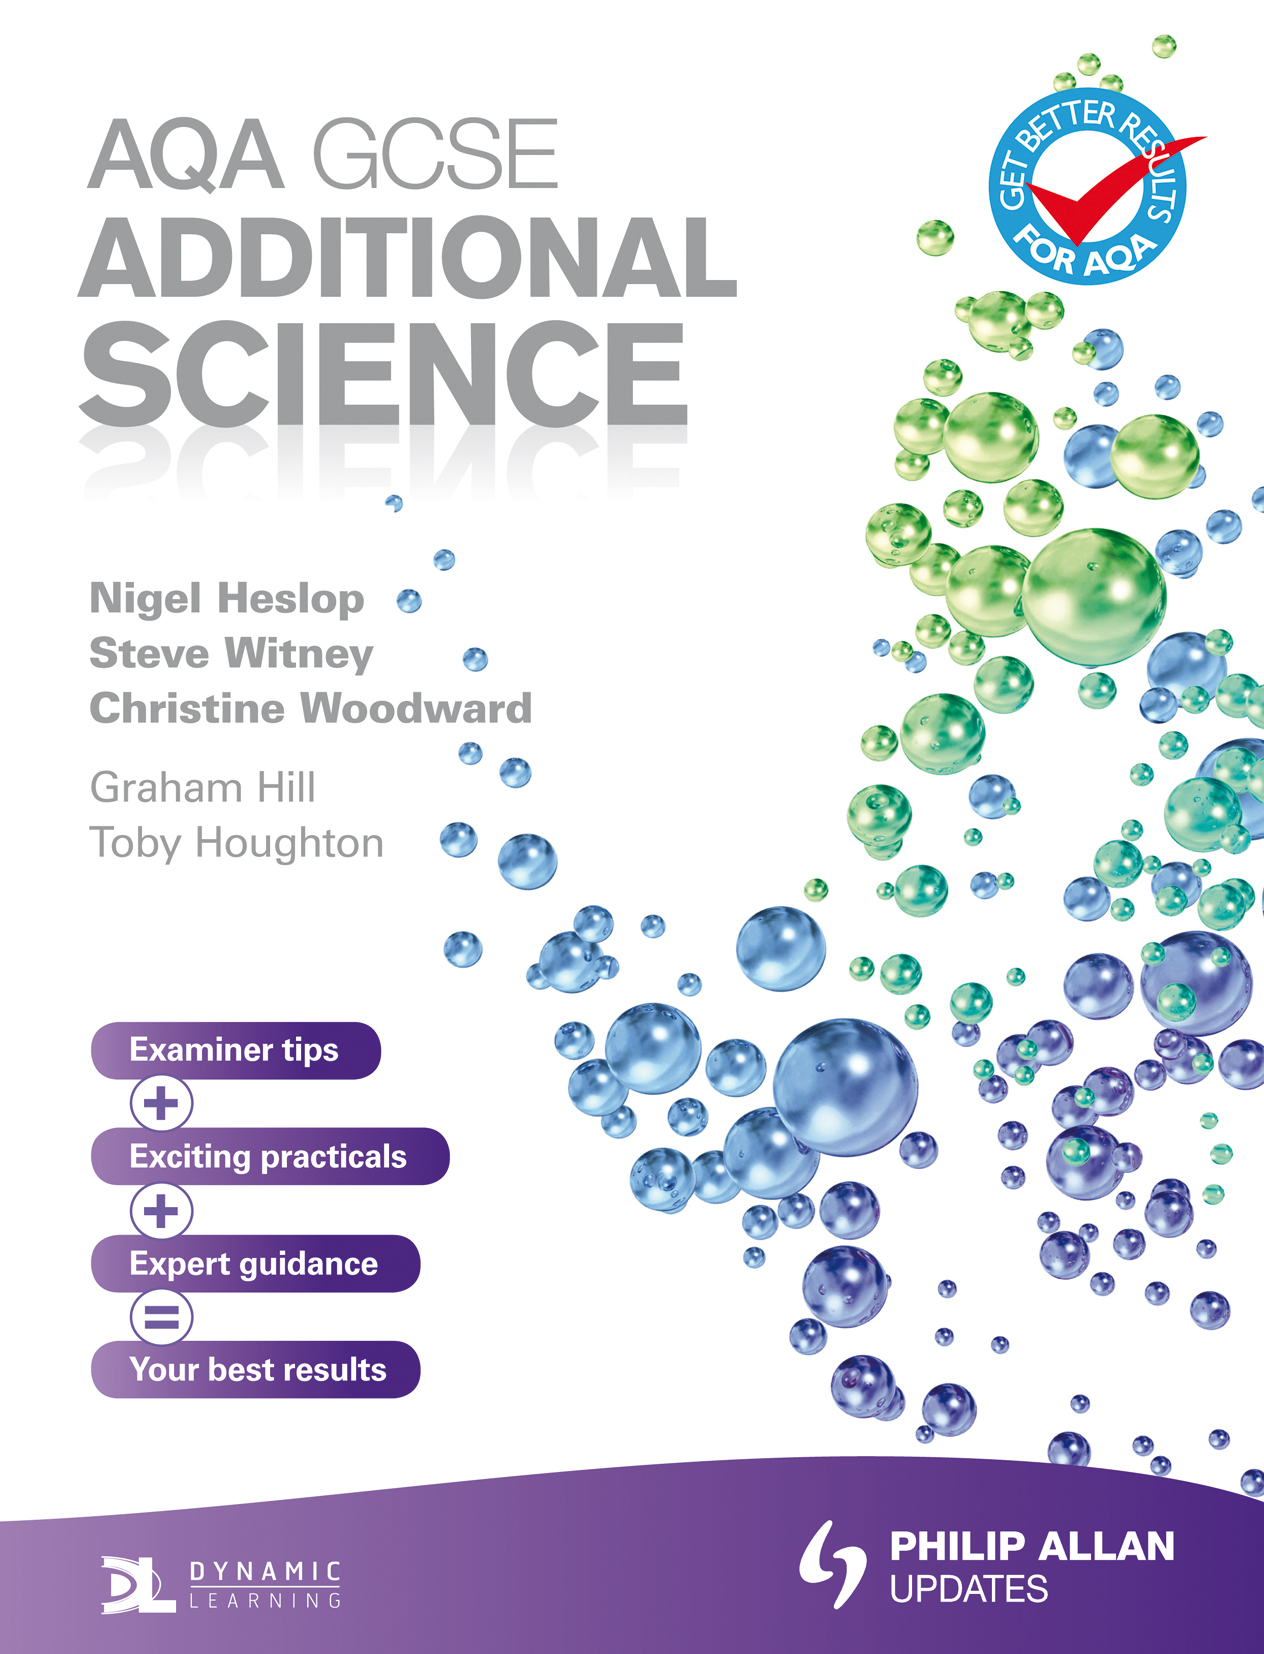 aqa additional applied science coursework If you need additional science coursework help or more information on science course, gcse, etc, then you can get more help on those areas when you work with our professionals, you will be able to get results that you would have thought you would have had to pay thousands of dollars for.